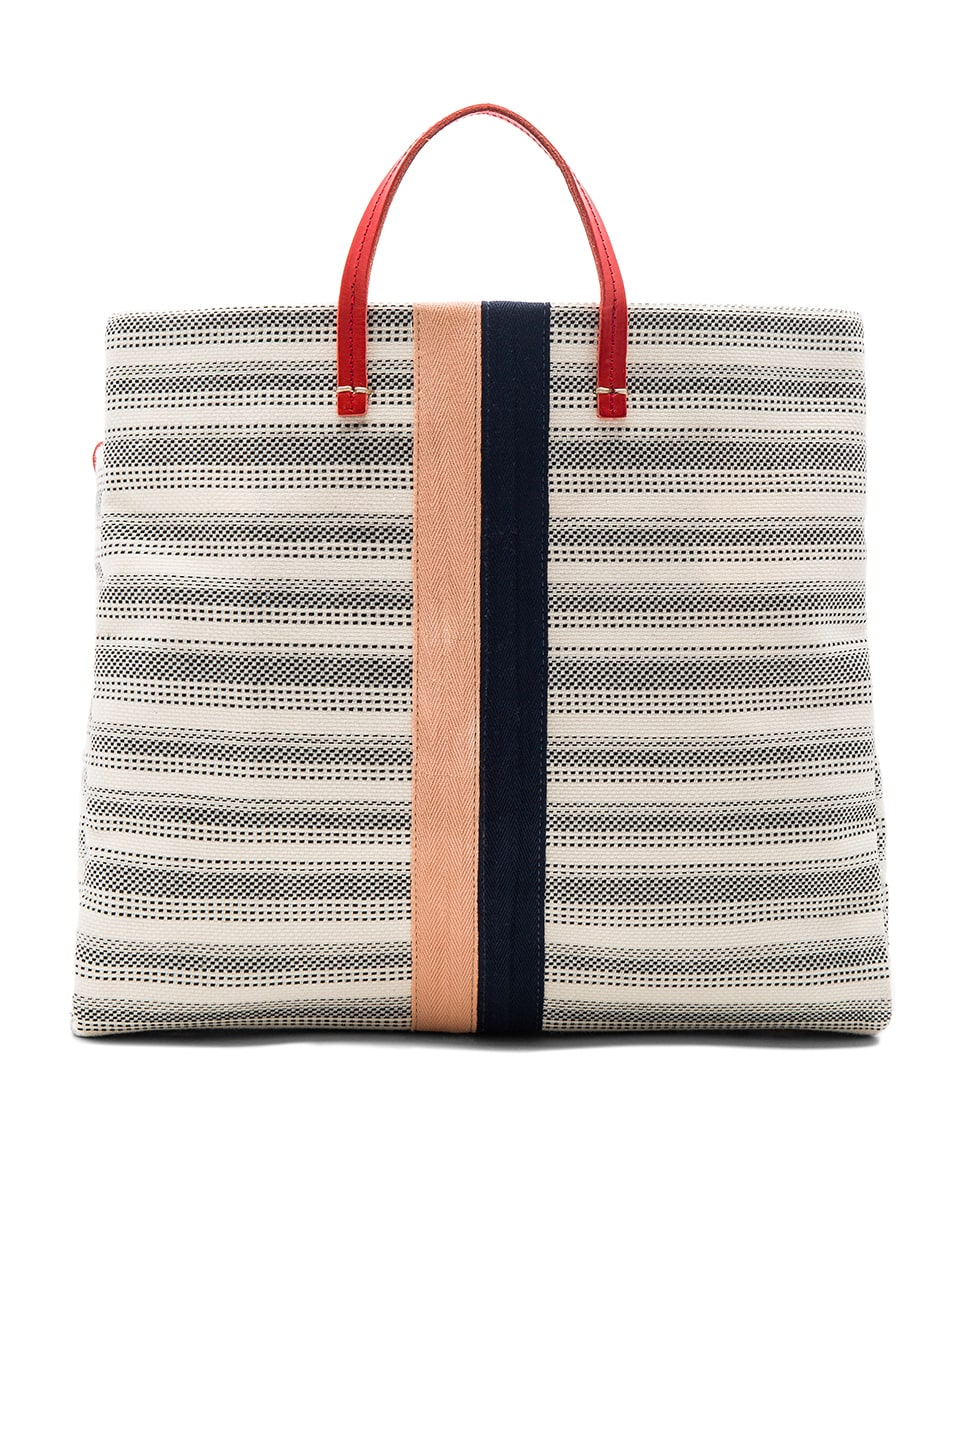 Clare V. Canvas Simple Tote Bag in Navy & Blush